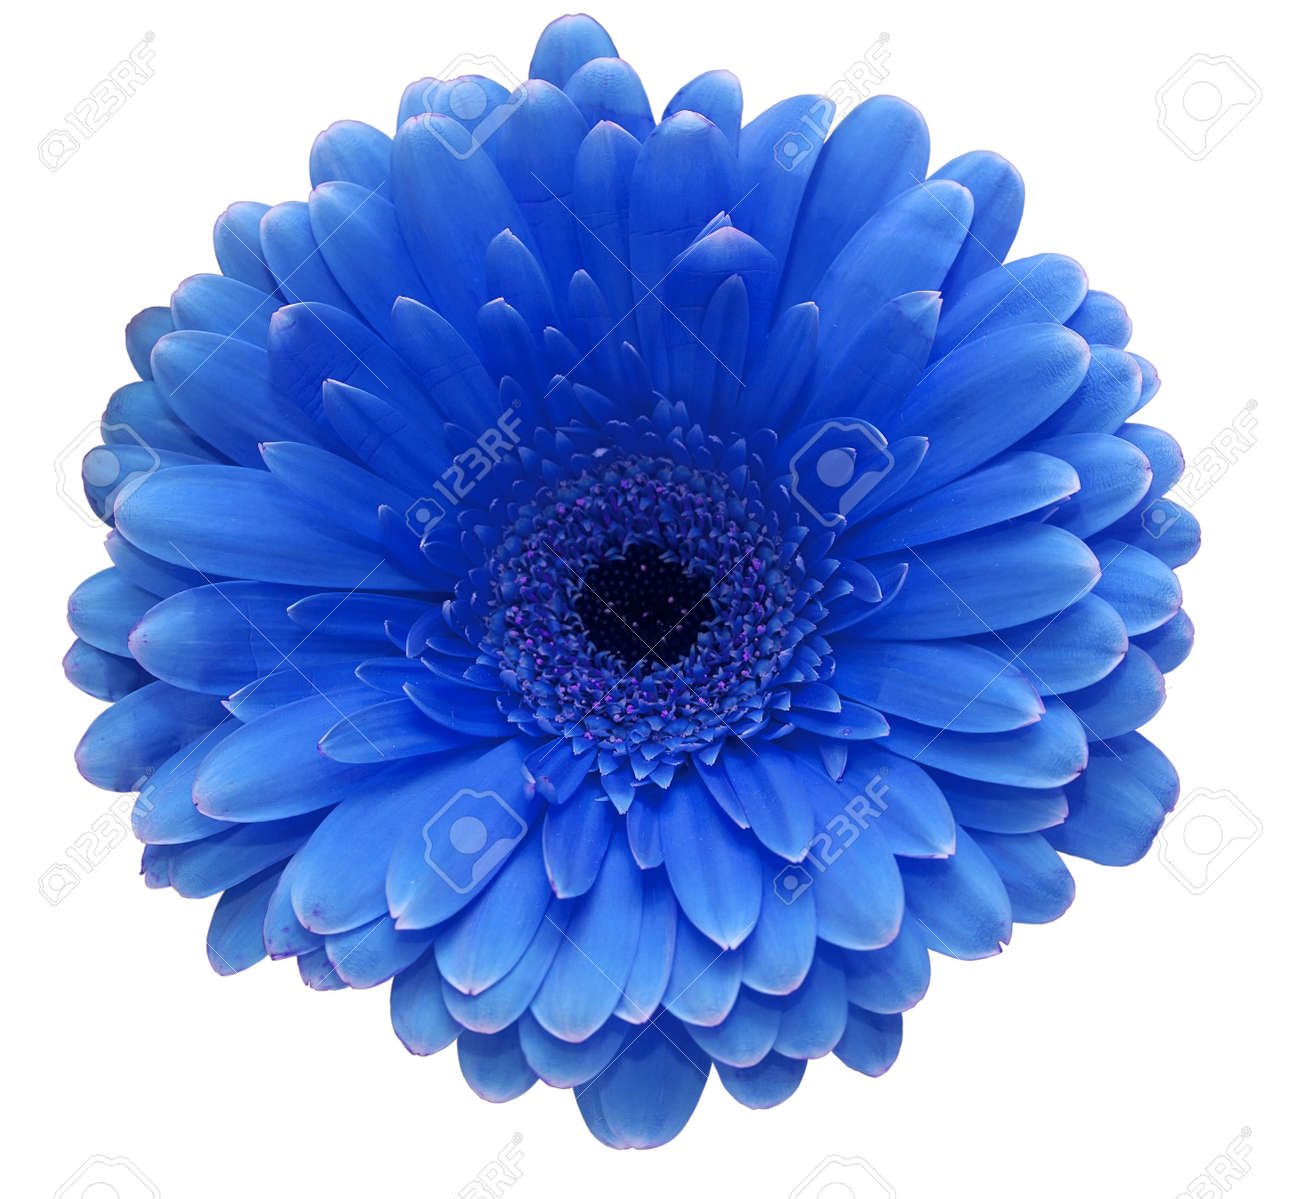 Blue flower stock photo picture and royalty free image image 8708385 blue flower izmirmasajfo